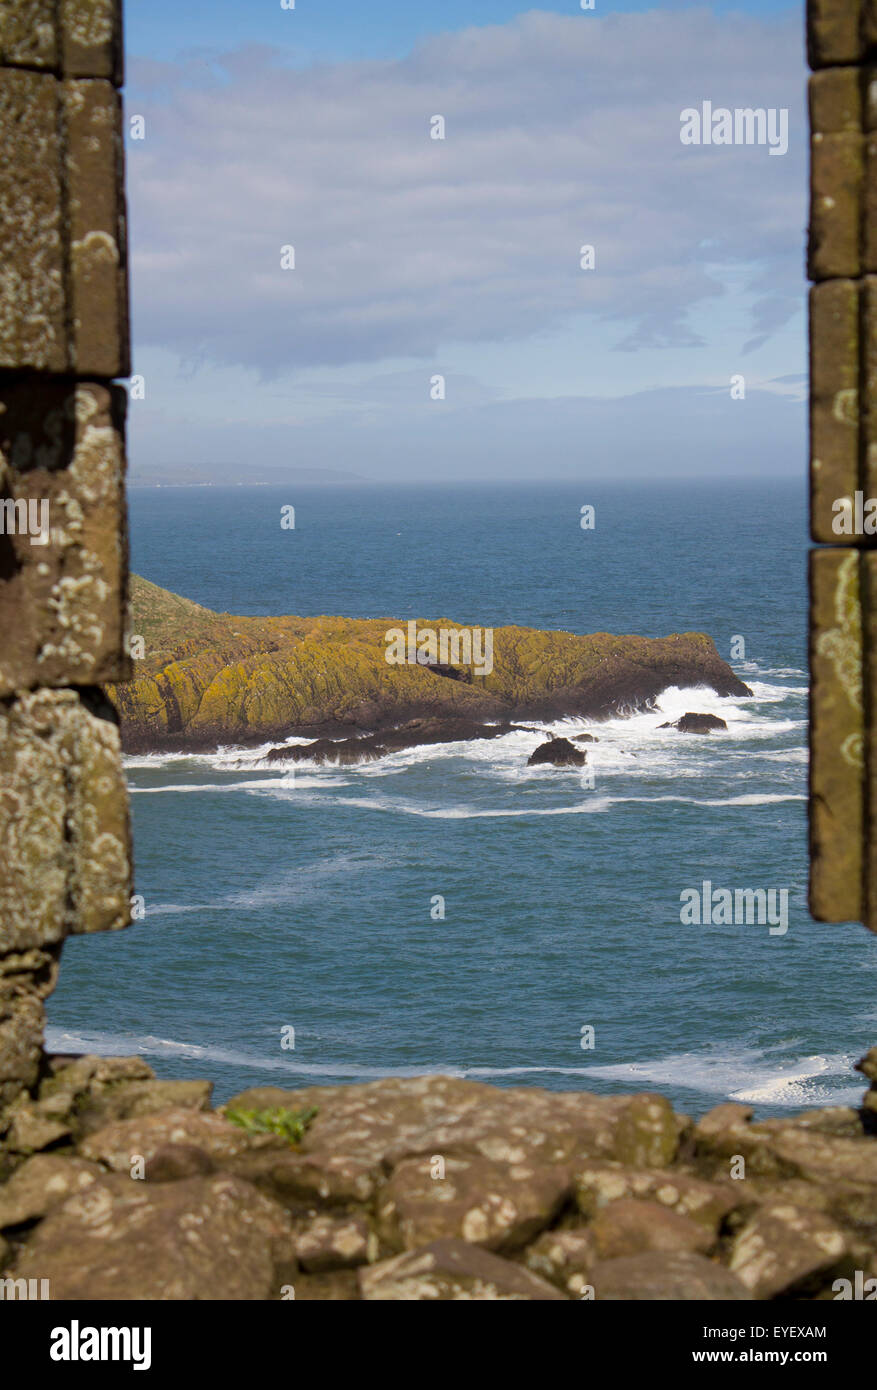 A view of the sea from a timeworn building. - Stock Image